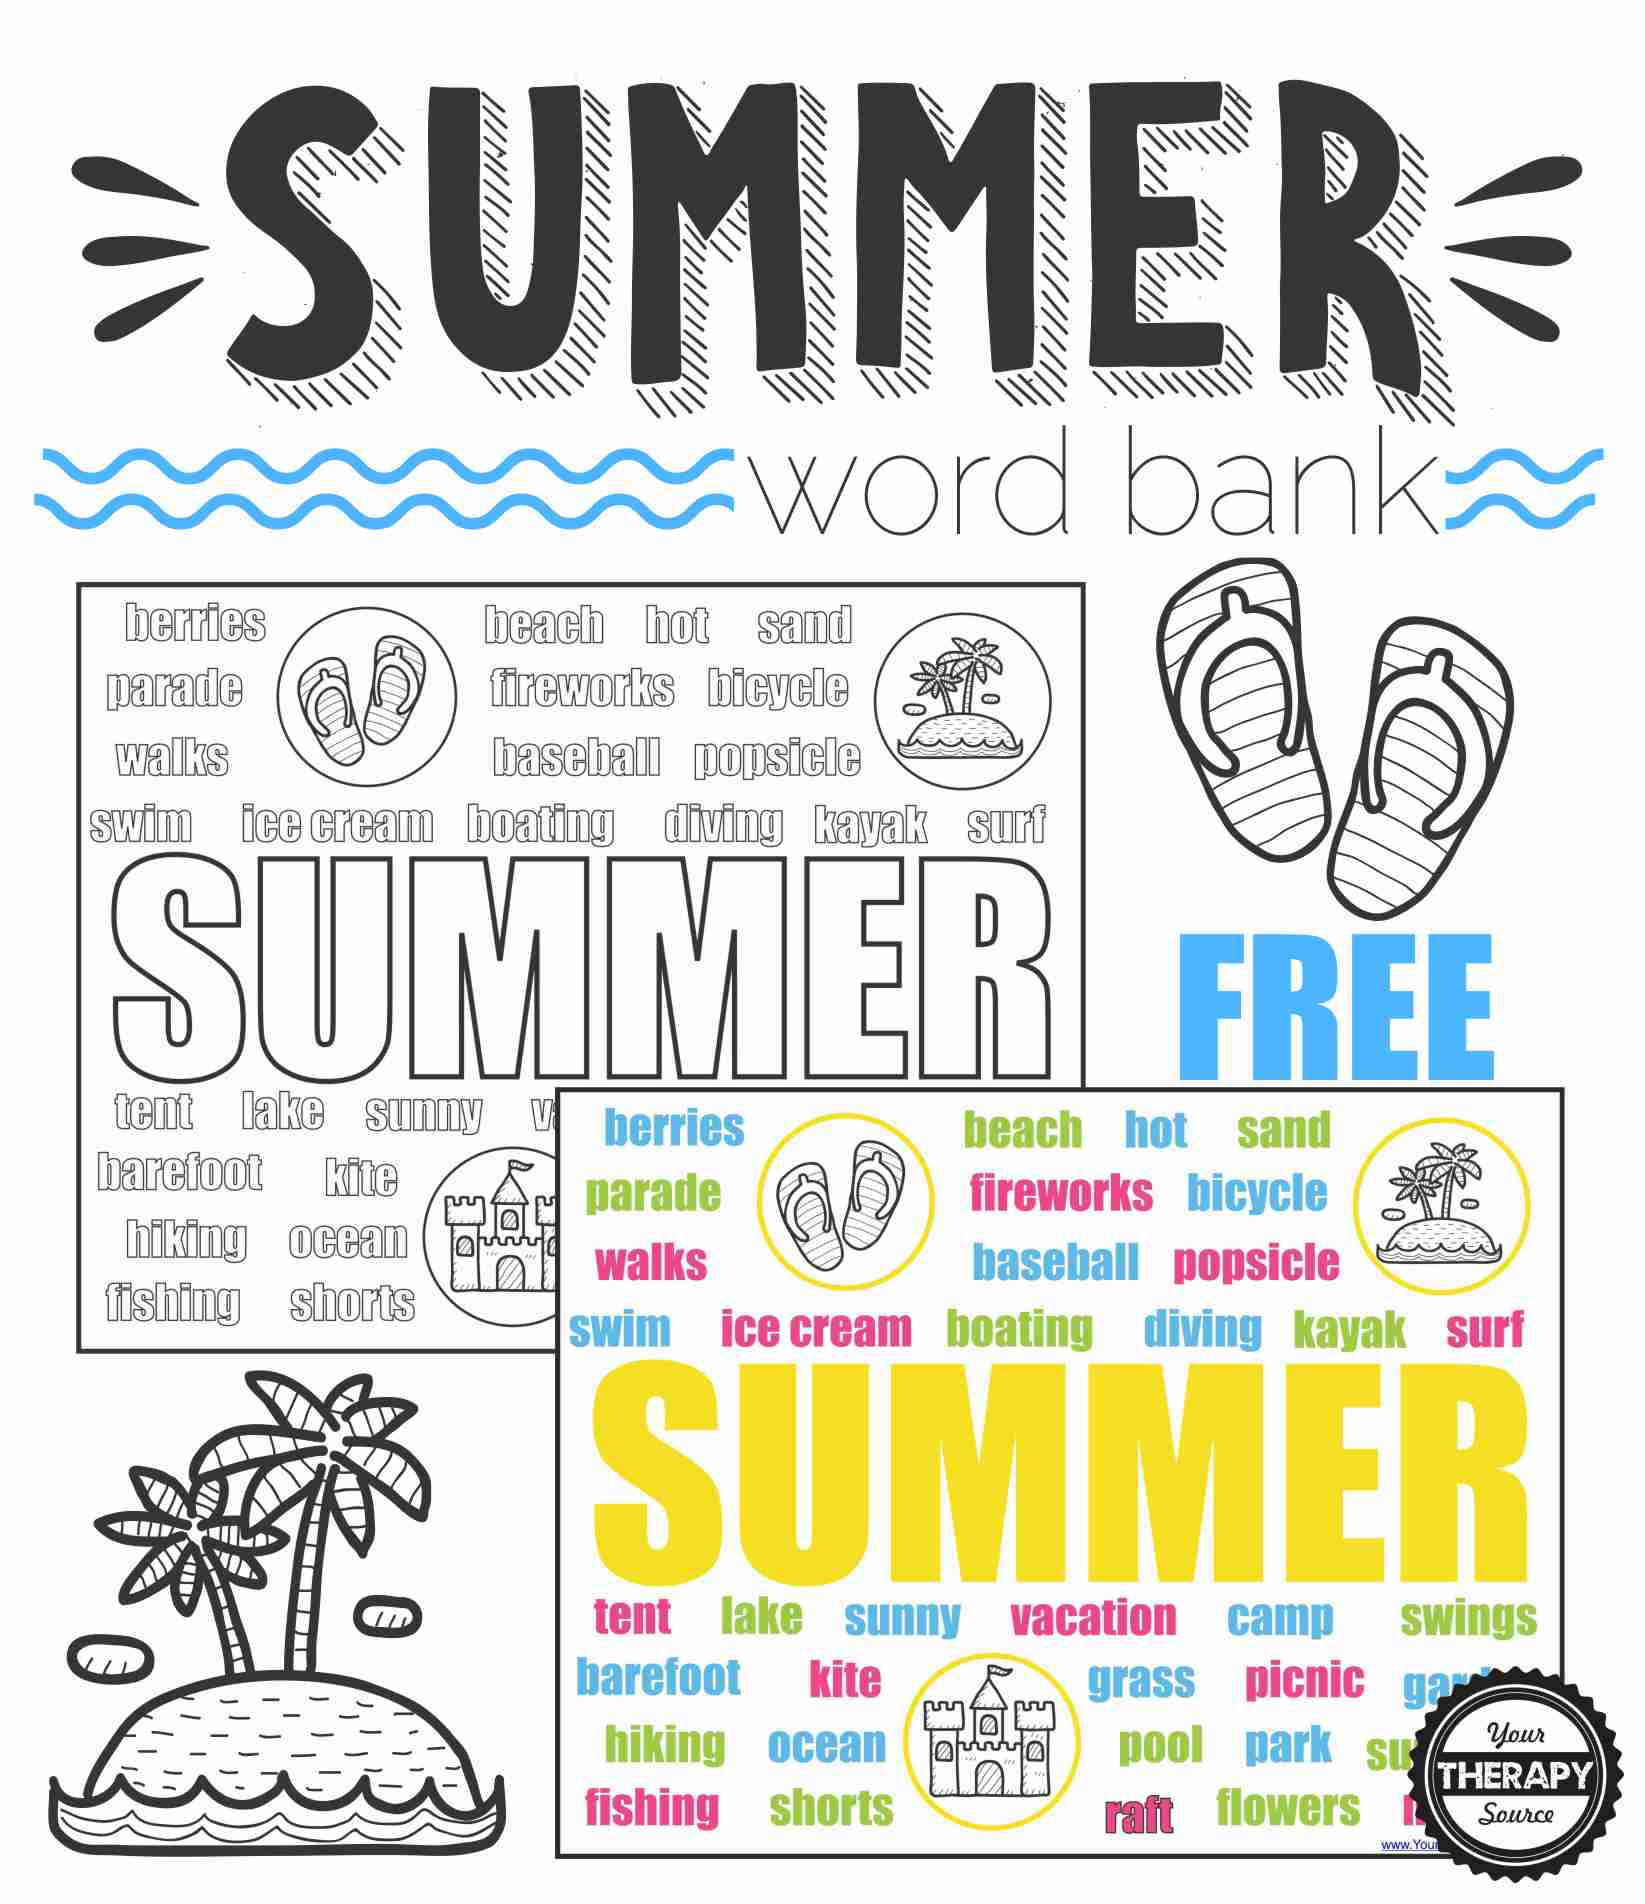 Summer Word Bank Collage